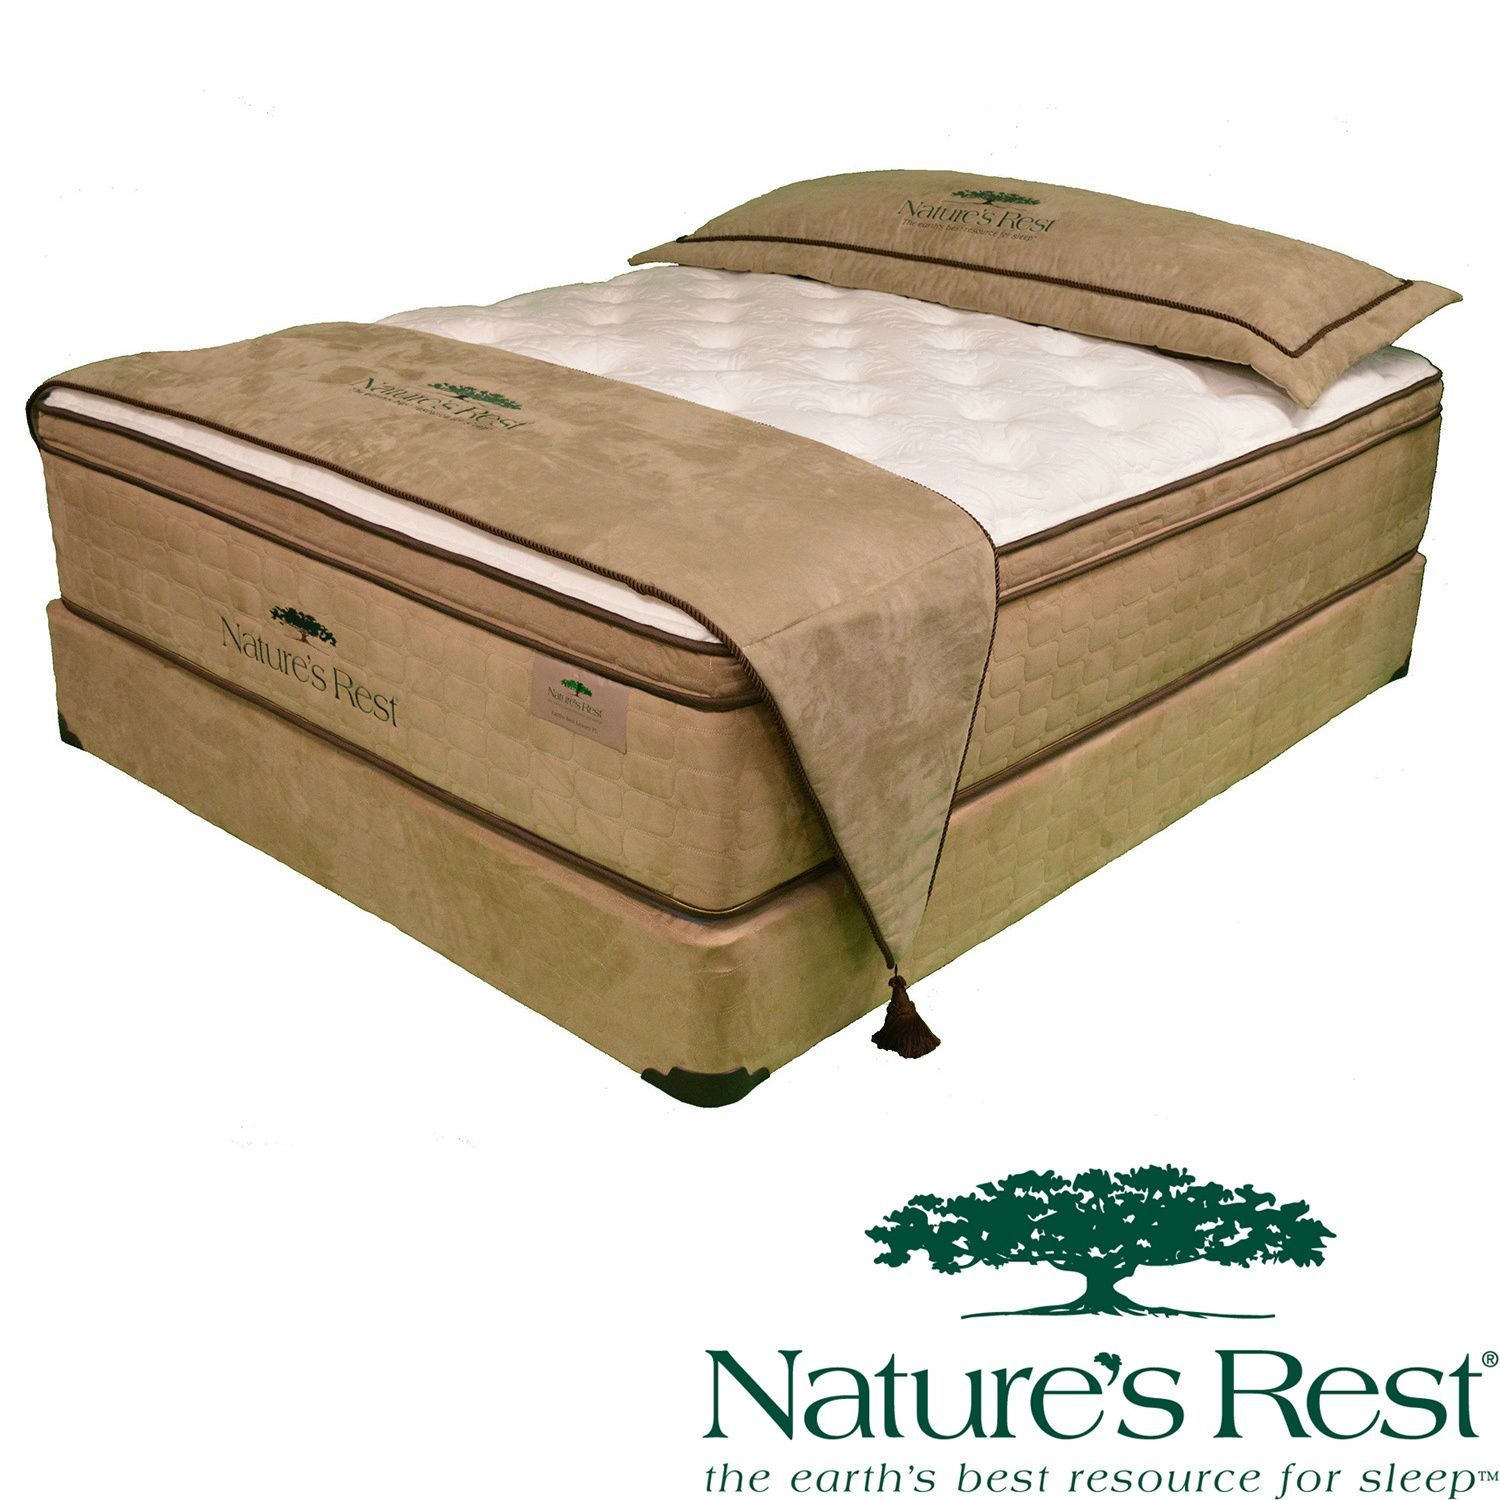 natures rest virtue luxury plush eurotop full size latex mattress